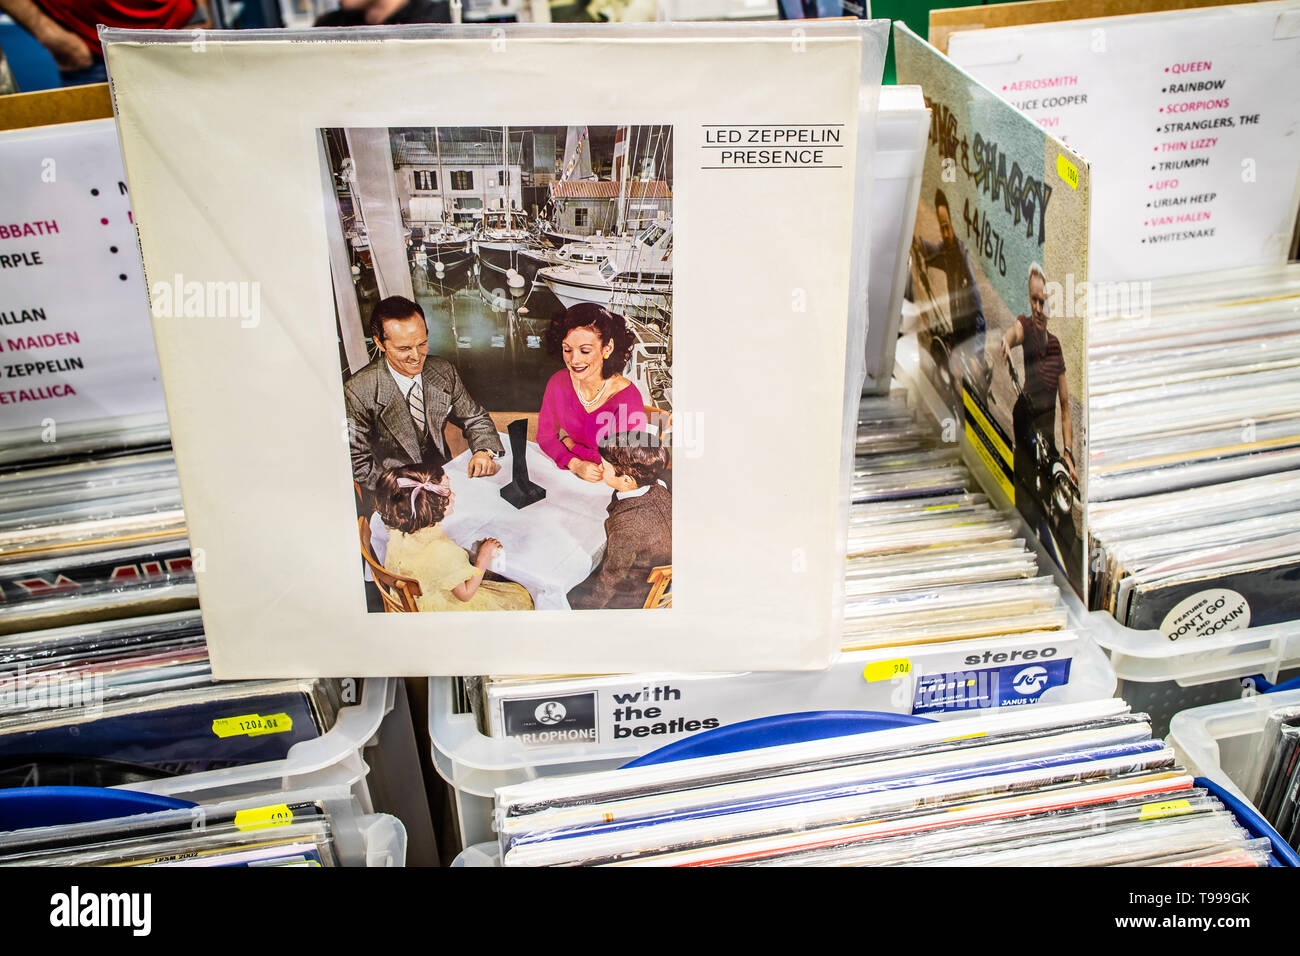 10 Inch Album Stock Photos & 10 Inch Album Stock Images - Alamy